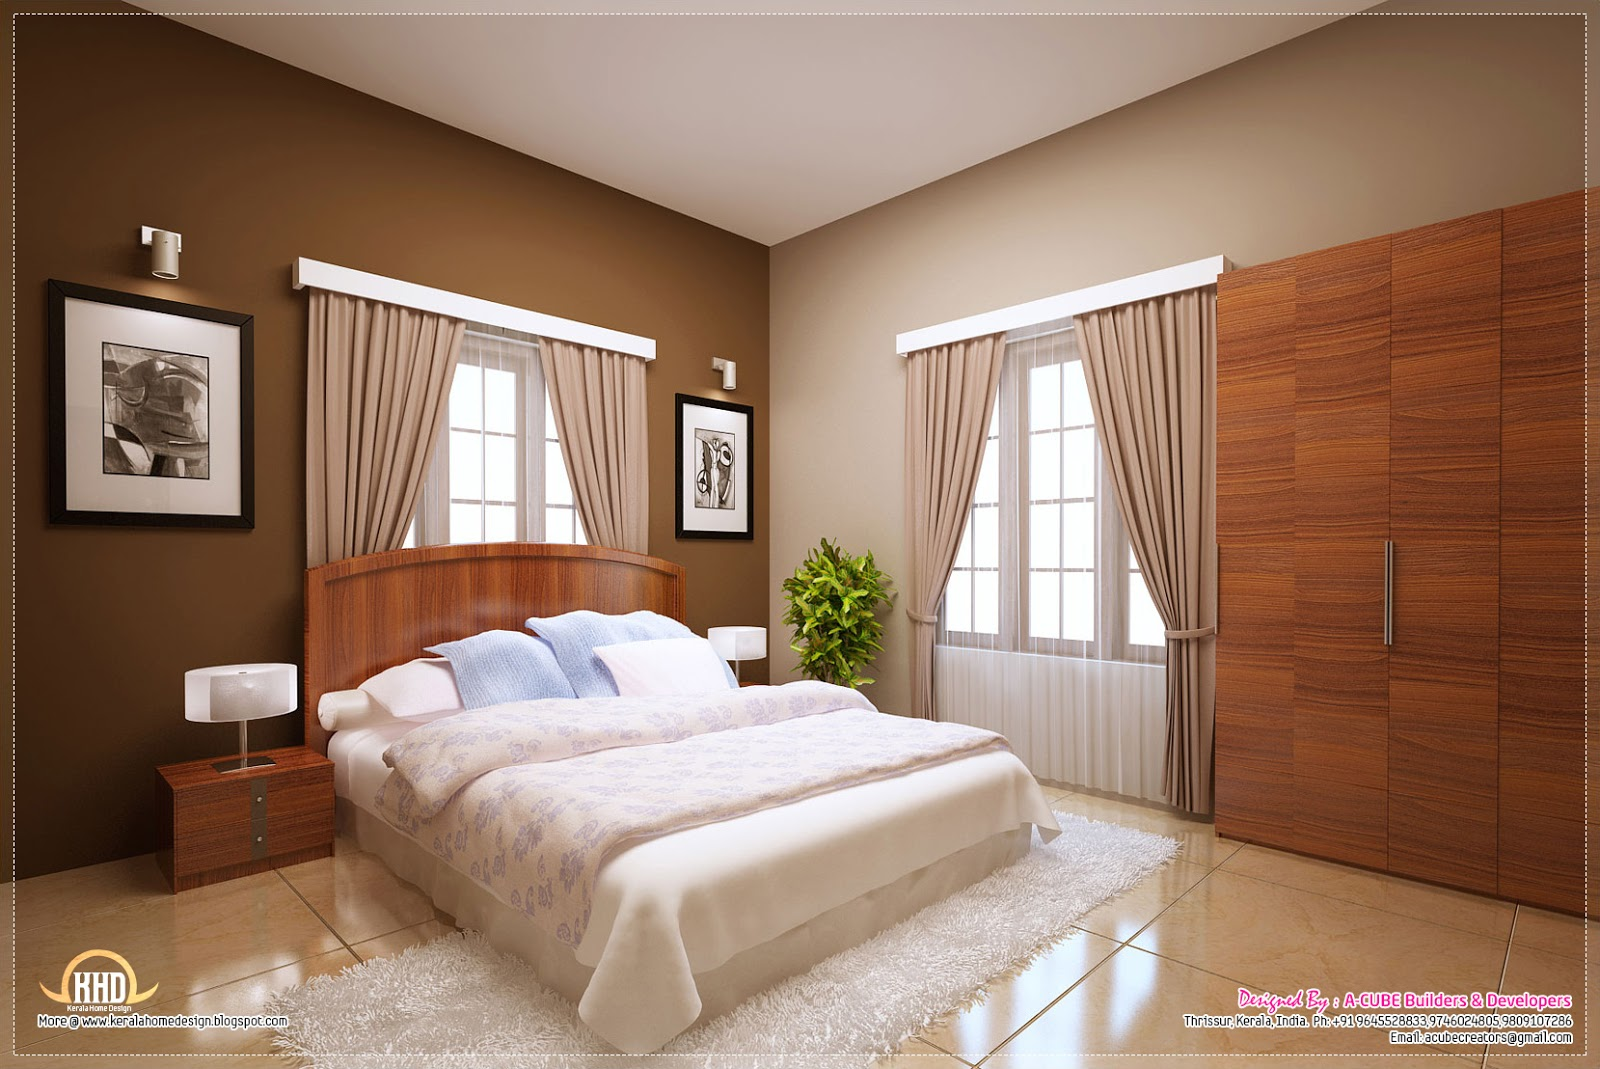 Awesome interior decoration ideas kerala home design and for Interior designs for bedrooms ideas